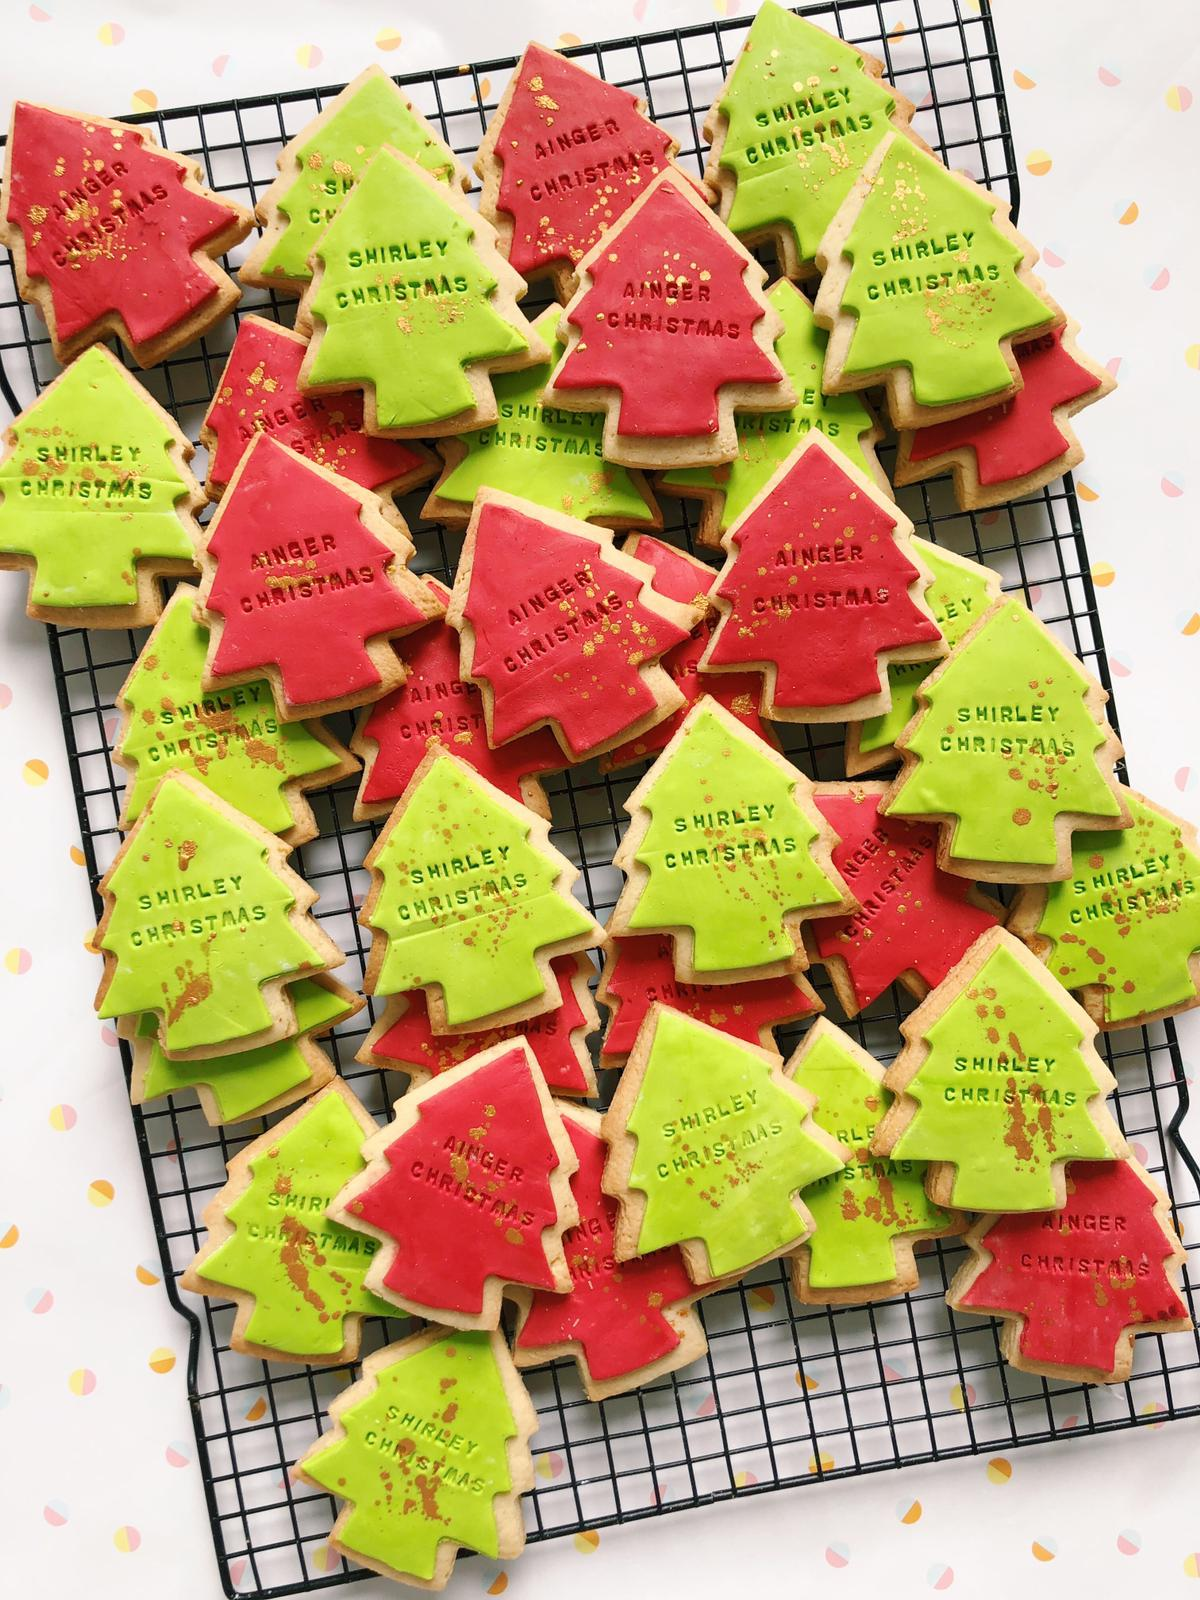 Jolly Christmas Trees - Sugar Rush by Steph